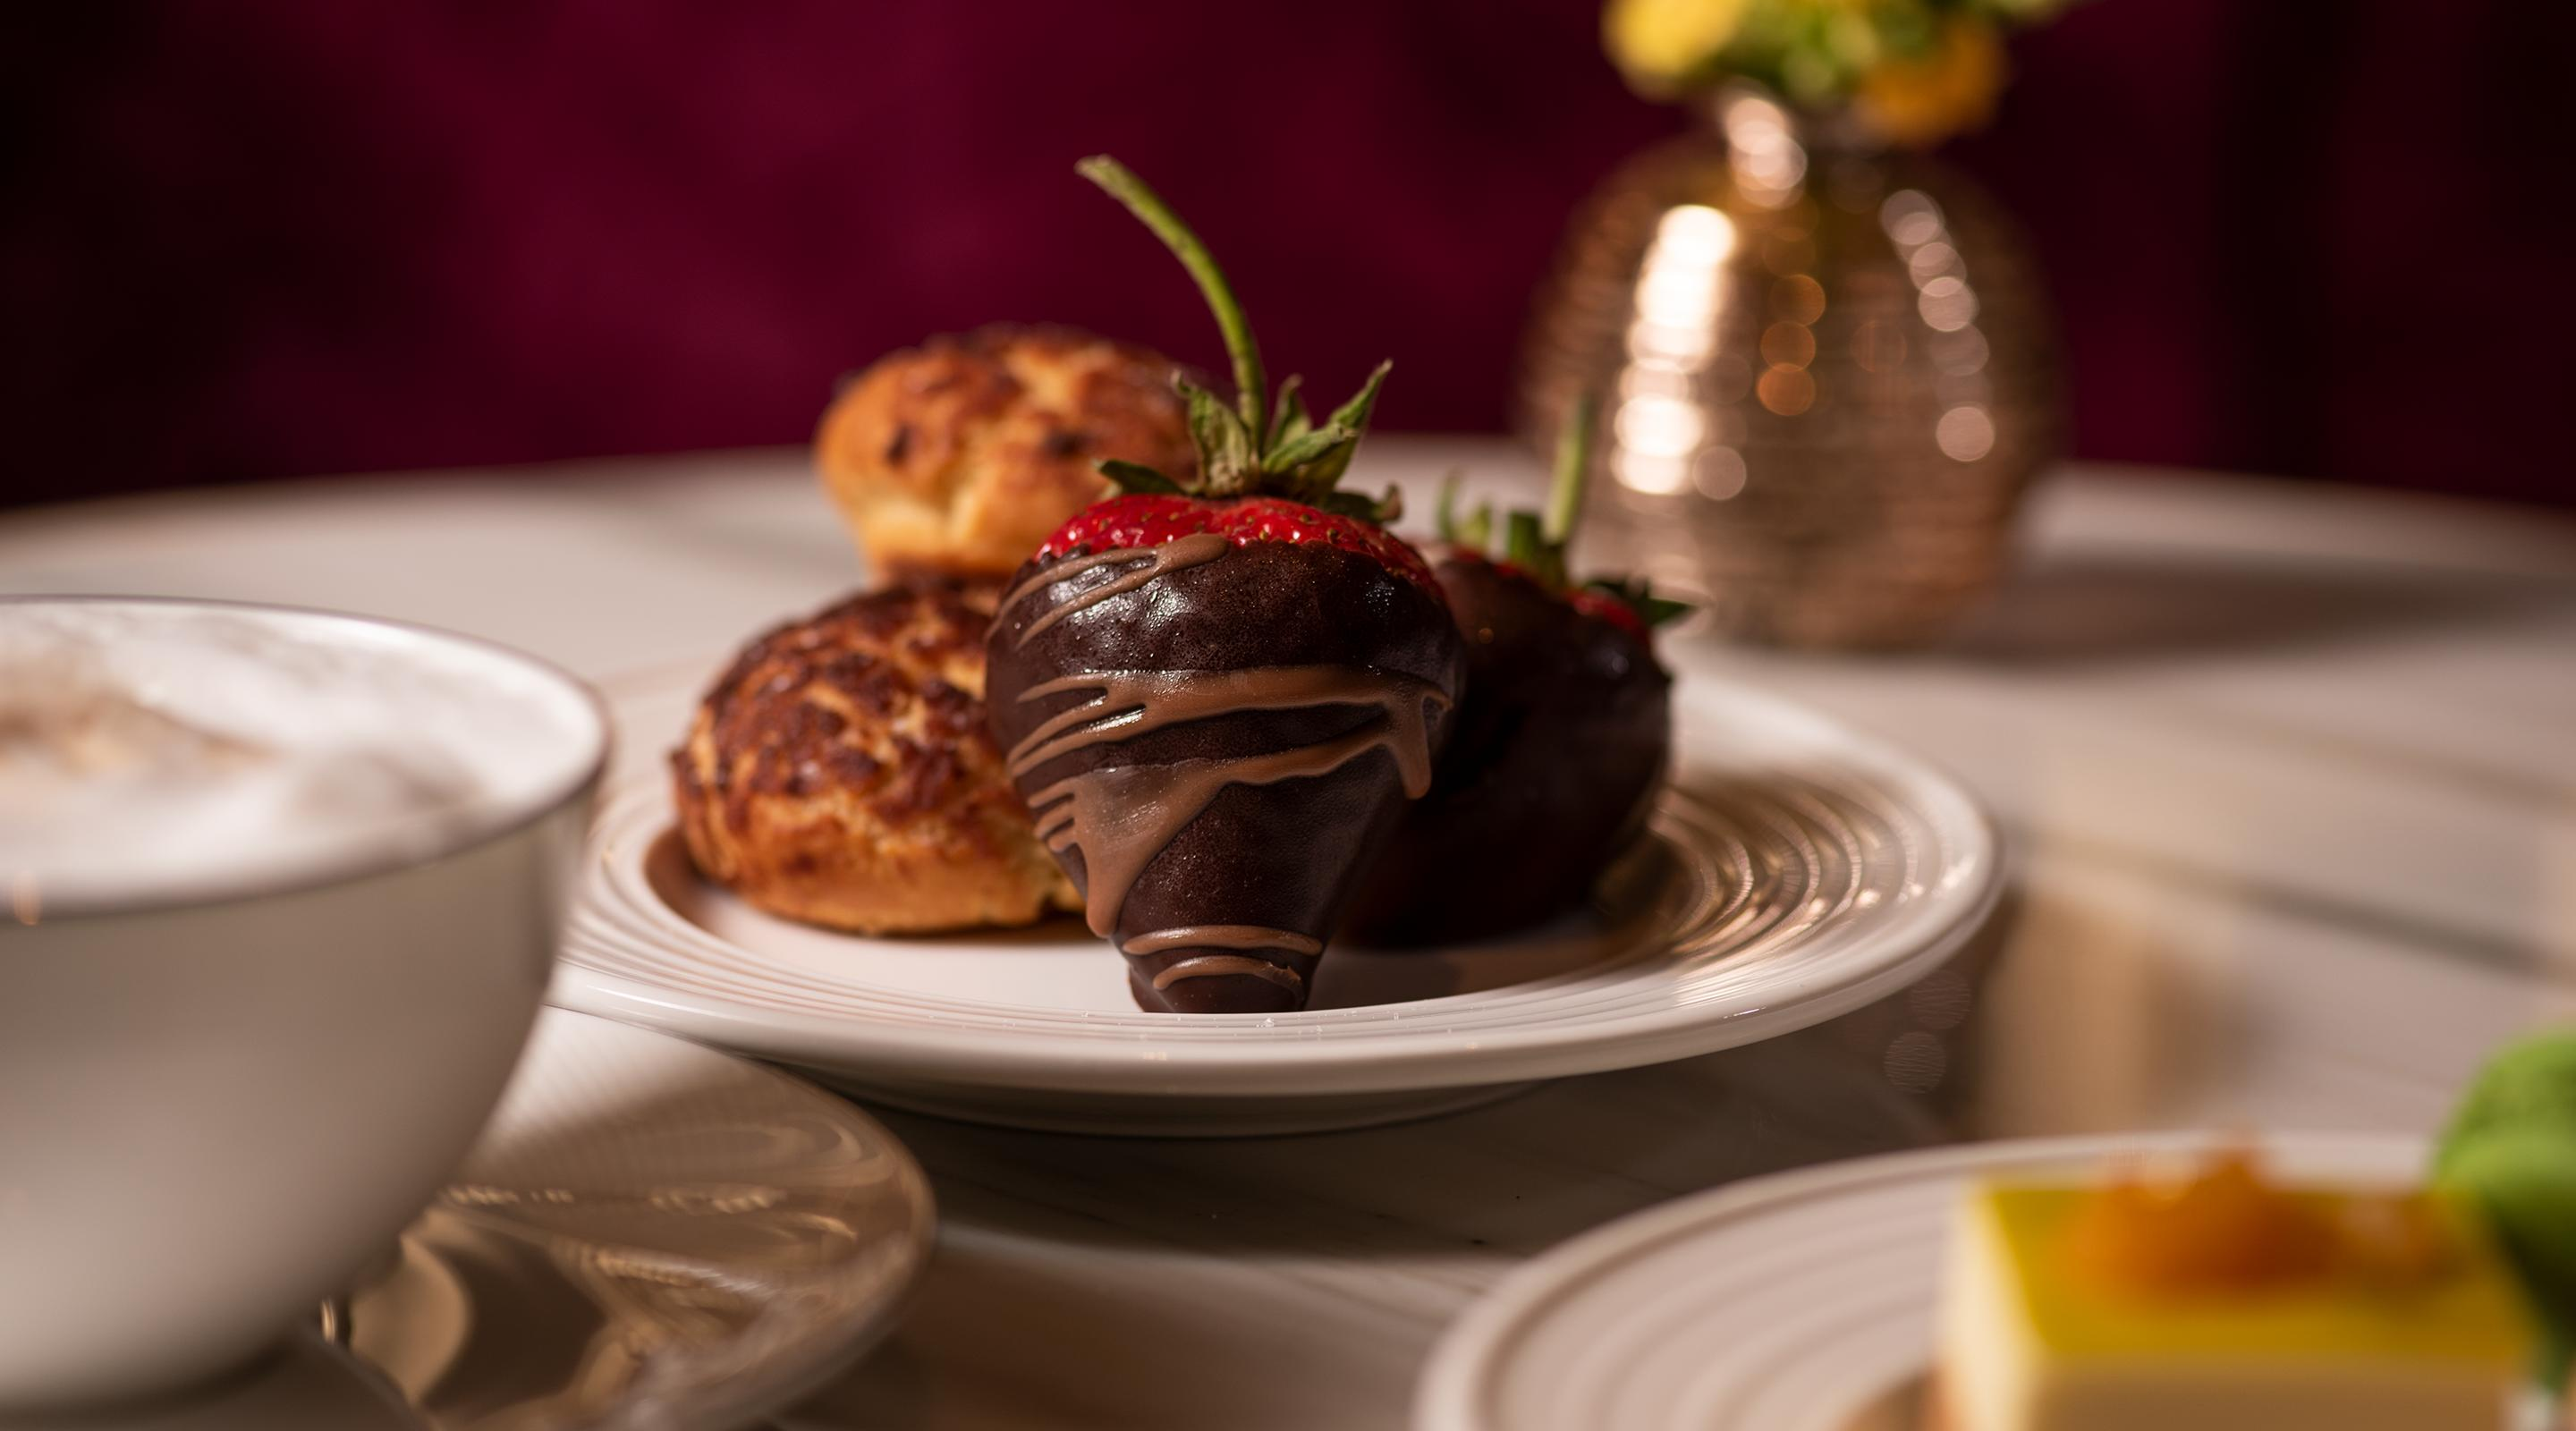 Chocolate-dipped strawberries, French macarons, and caramel chouquette headline the desserts available on a nightly basis.